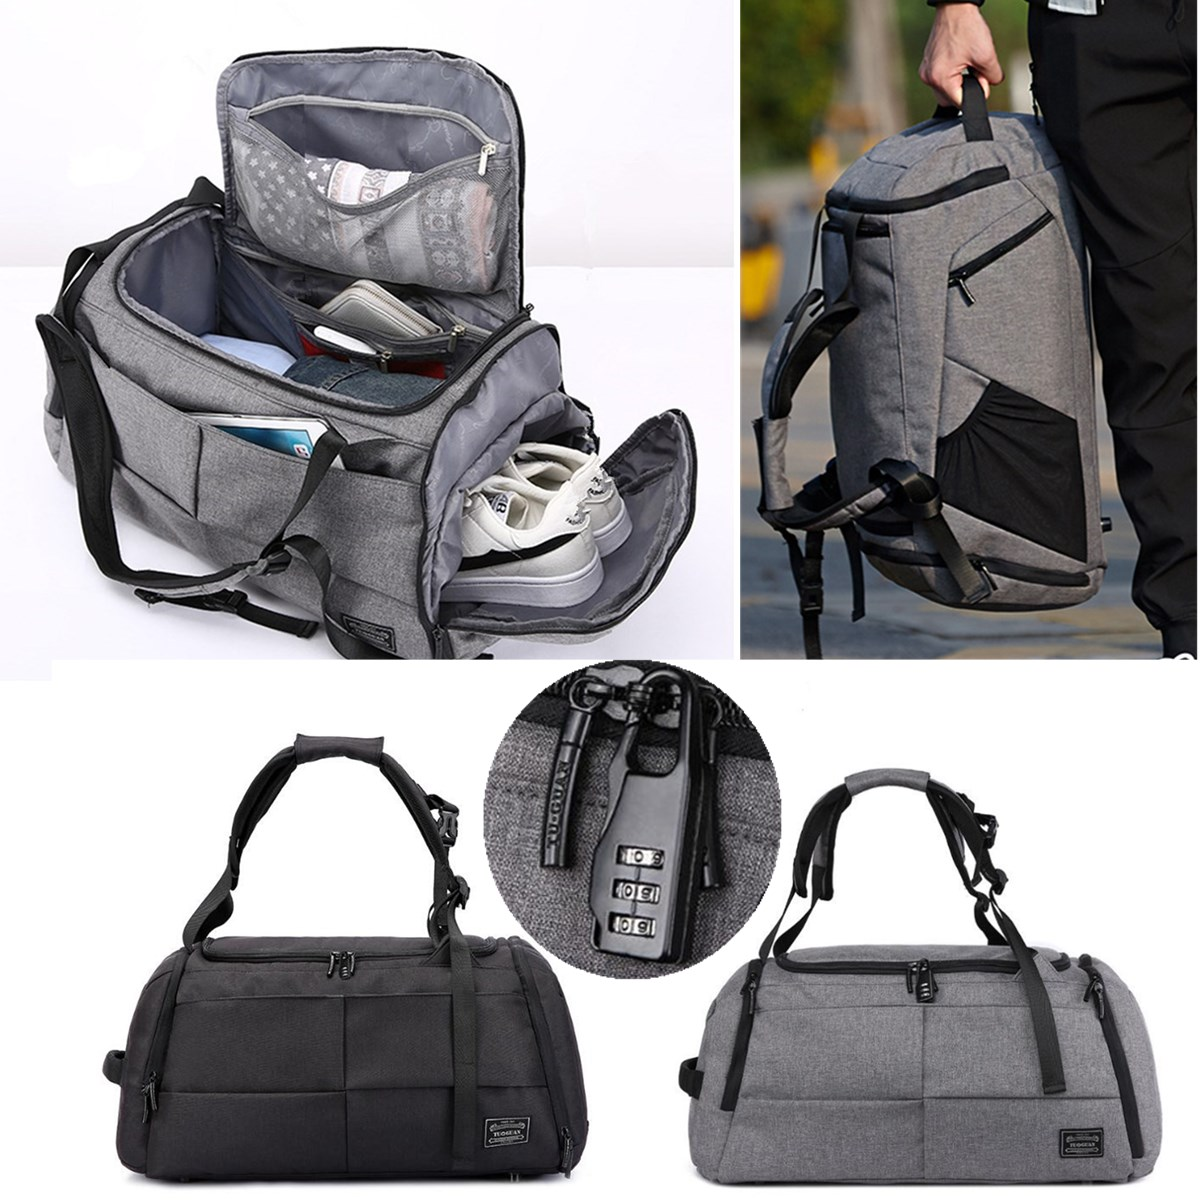 Multifunctional Men Women Luggage Travel Bag Large Capacity Duffle Bag Satchel Shoulder Gym Sports Handbag with Shoes Storage